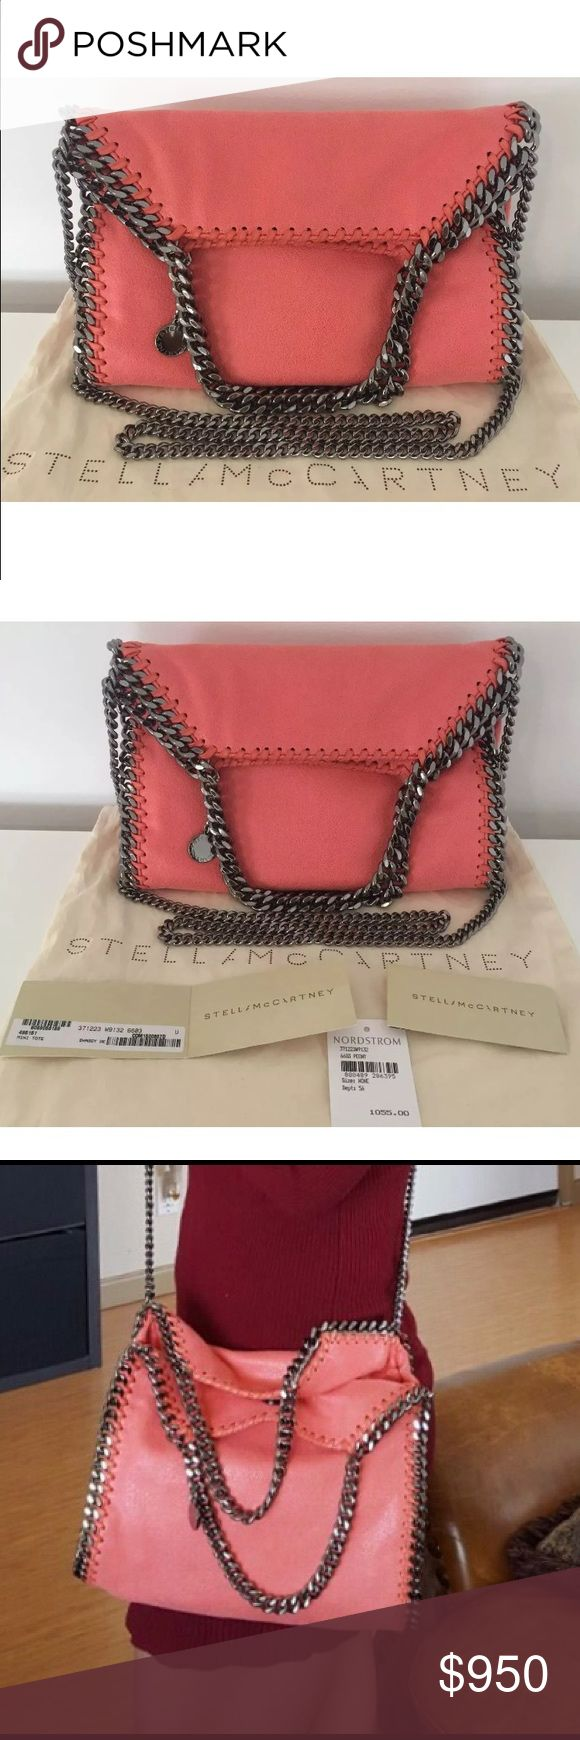 .BNWT Stella McCartney Falabella Mini Shaggy PEONY 🎉🍁SALE🍁🎉🎉🍁SALE🍁🎉🎉🍁SALE🍁🎉🍁SALE🍁🎉🍁SALE🍁🎉 Stella McCartney Falabella Mini Shaggy Deer Faux PEONY color Orange/red/pink super cute and chic! Silver Metallic tone strap, magnetic strap closure. Measurement is approximately 10x10x3 strap drop 5 with 18.5 shoulder. Can be use as a handbag or crossbody. Comes with dustbag and all the paperworks. 100% auntentic. 🚫No Trades🚫 I paid over $1160 wth tax Will accept a reasonable offers…